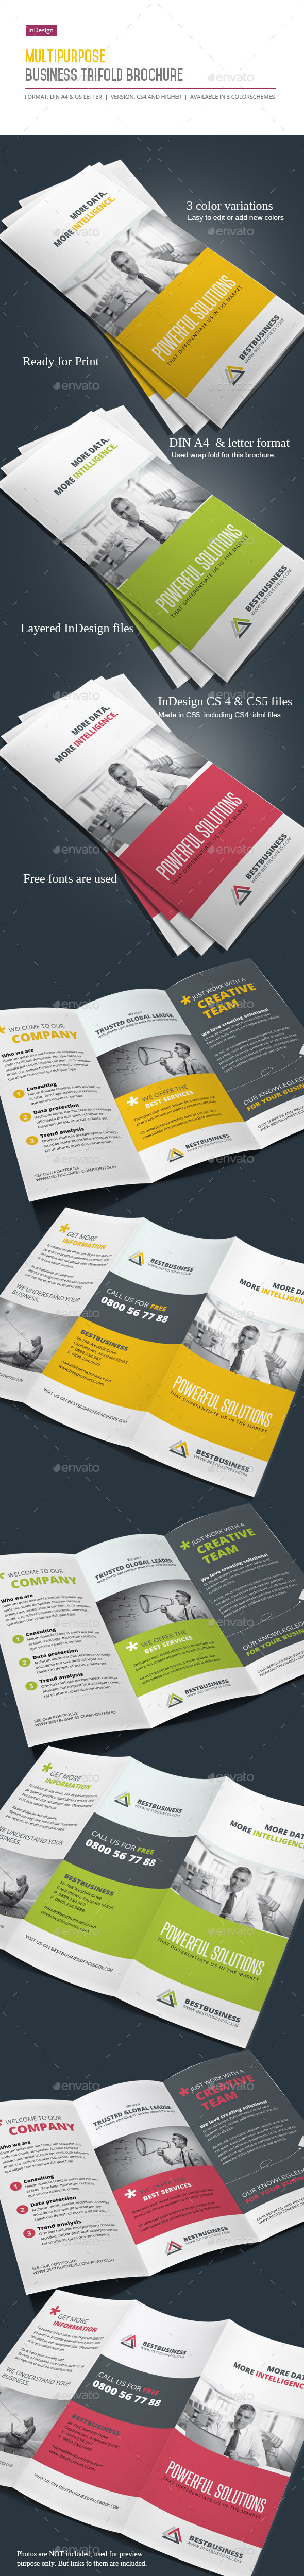 Business Trifold Brochure Vol III